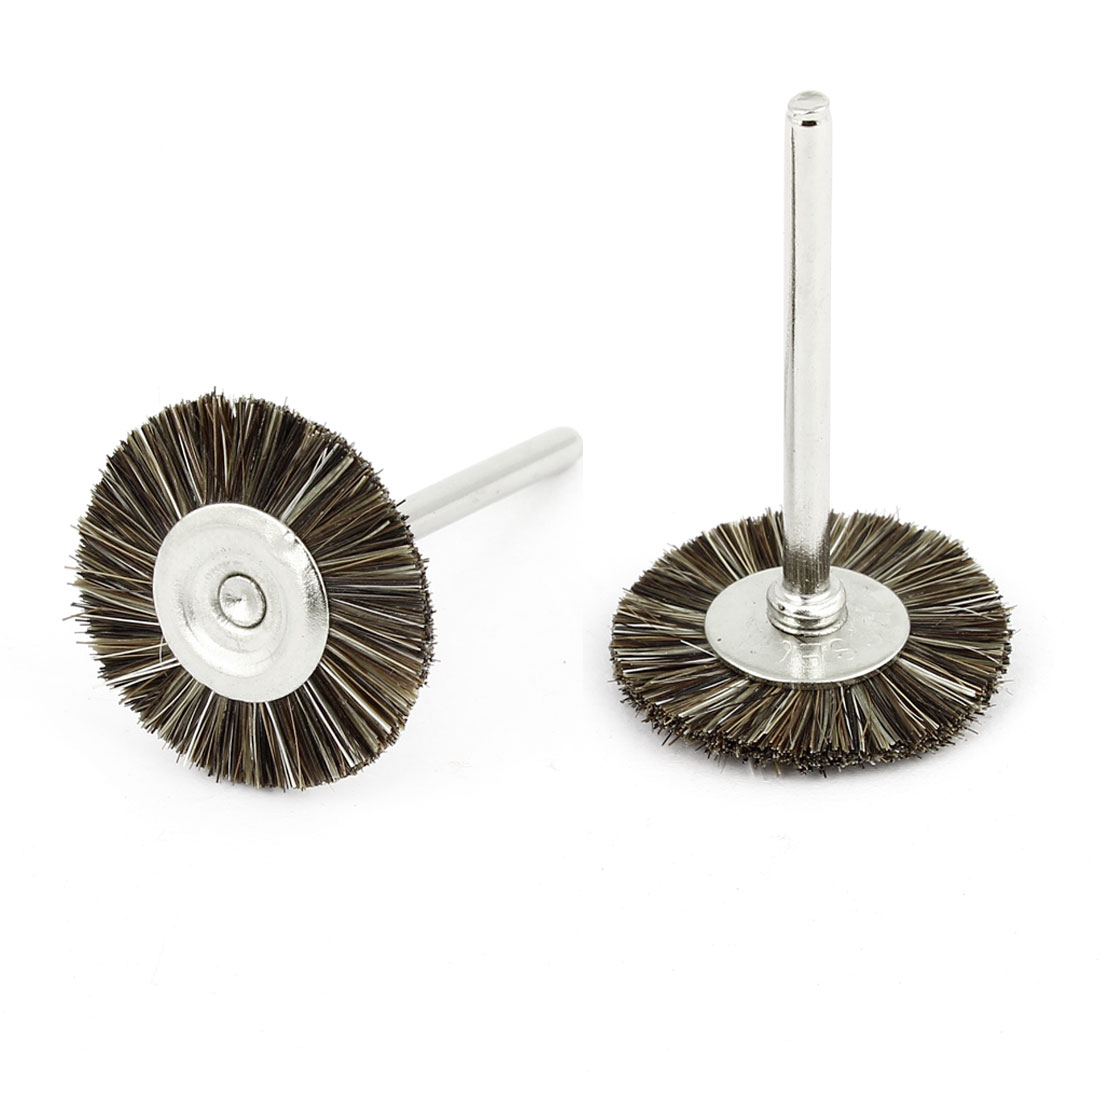 2 Pcs Replacement 25mm Dia Brown Nylon Brush Polishing Wheel Polishers for Rotary Tool